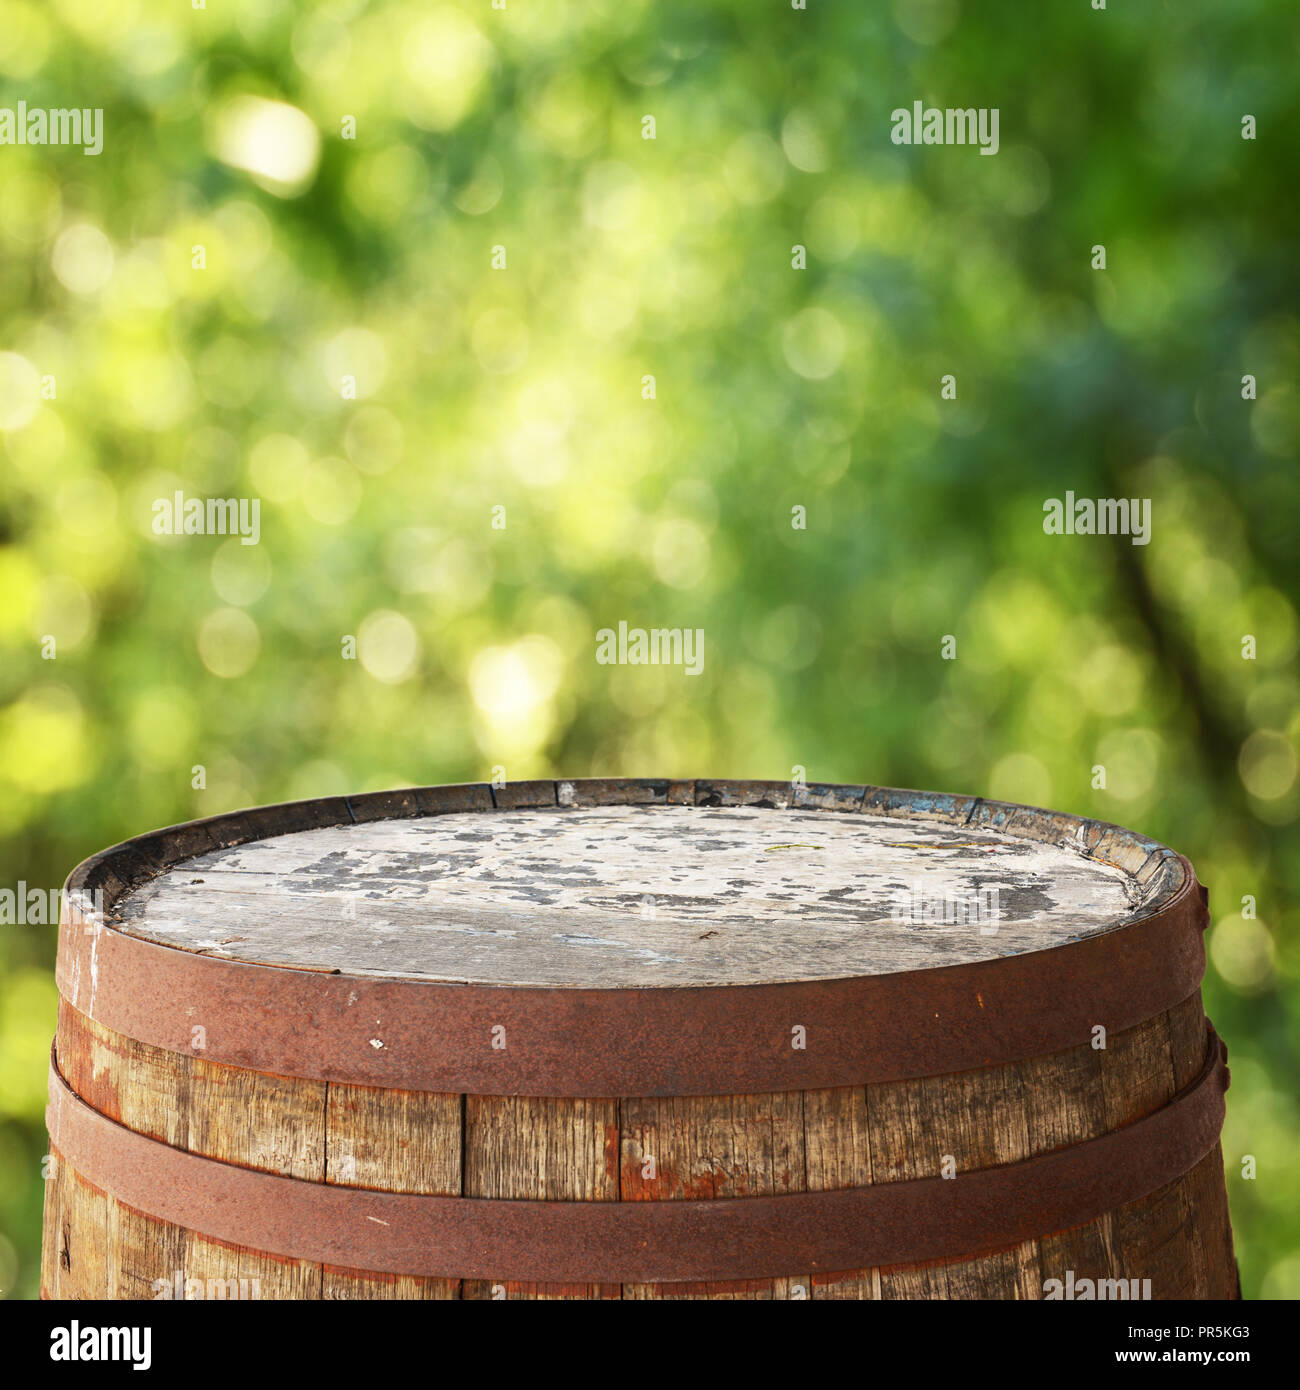 Barrel top for display montages - Stock Image